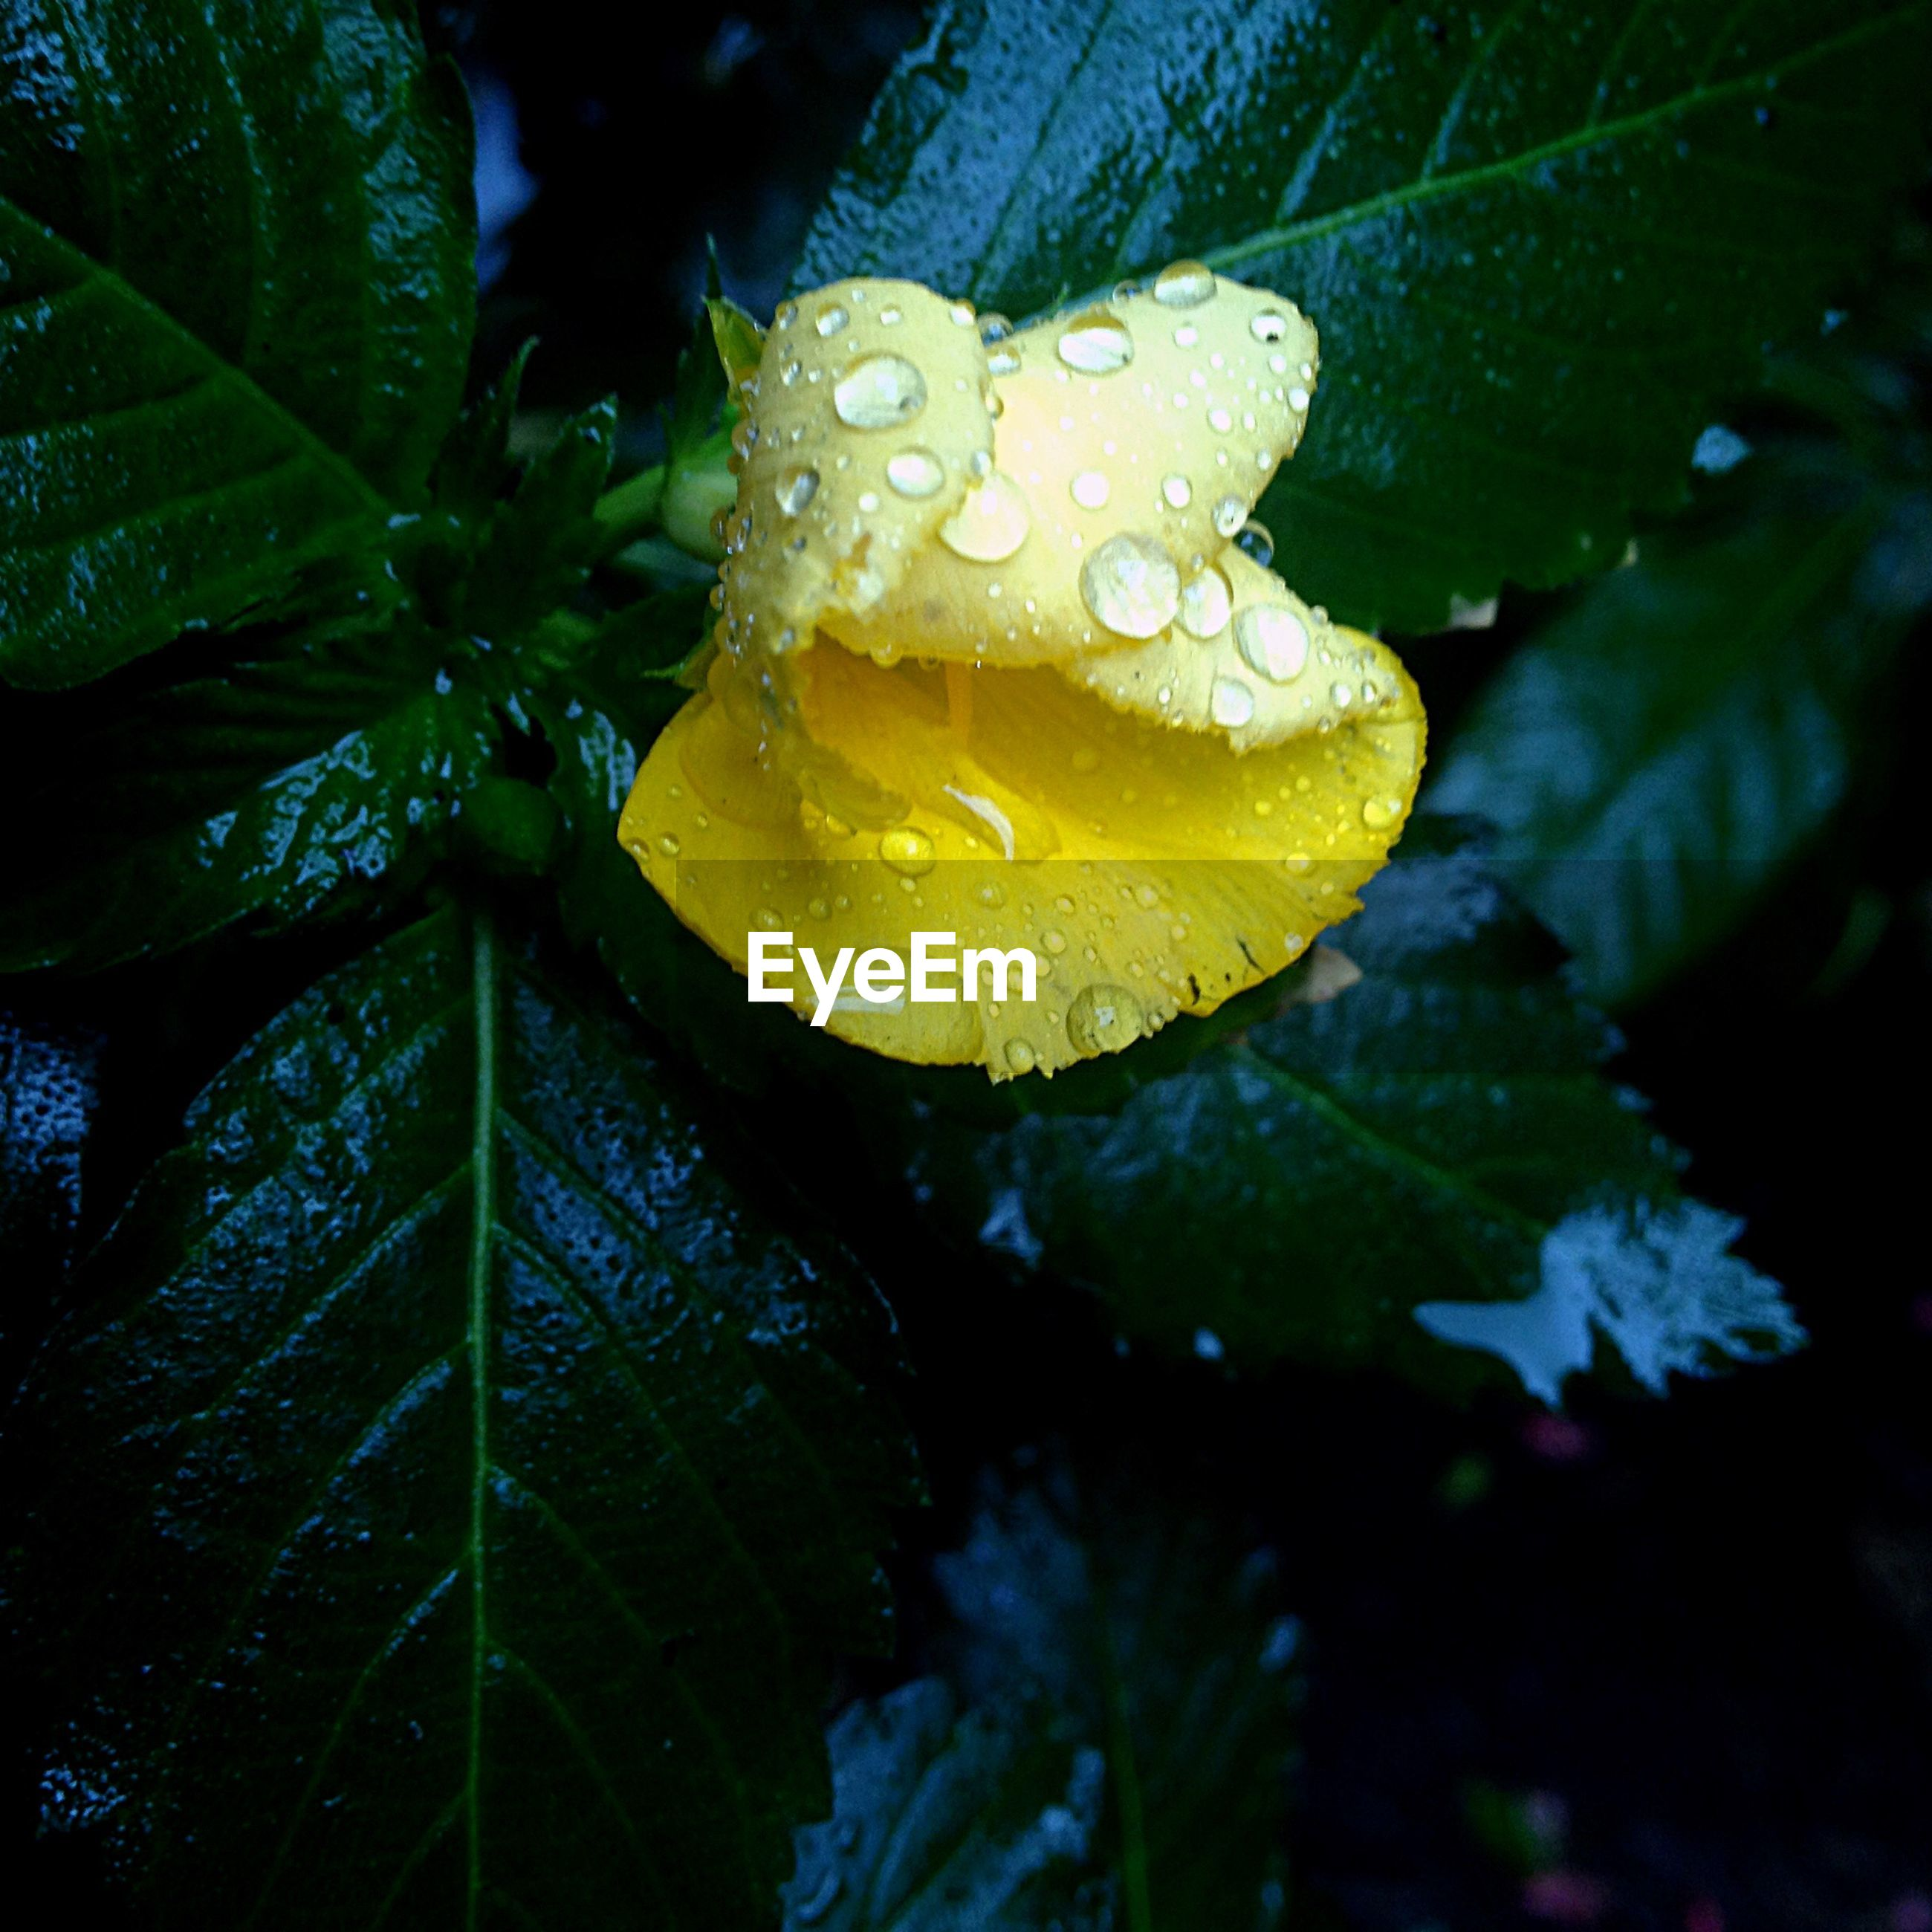 drop, water, freshness, wet, close-up, flower, fragility, growth, beauty in nature, petal, dew, nature, yellow, flower head, plant, single flower, raindrop, purity, focus on foreground, leaf